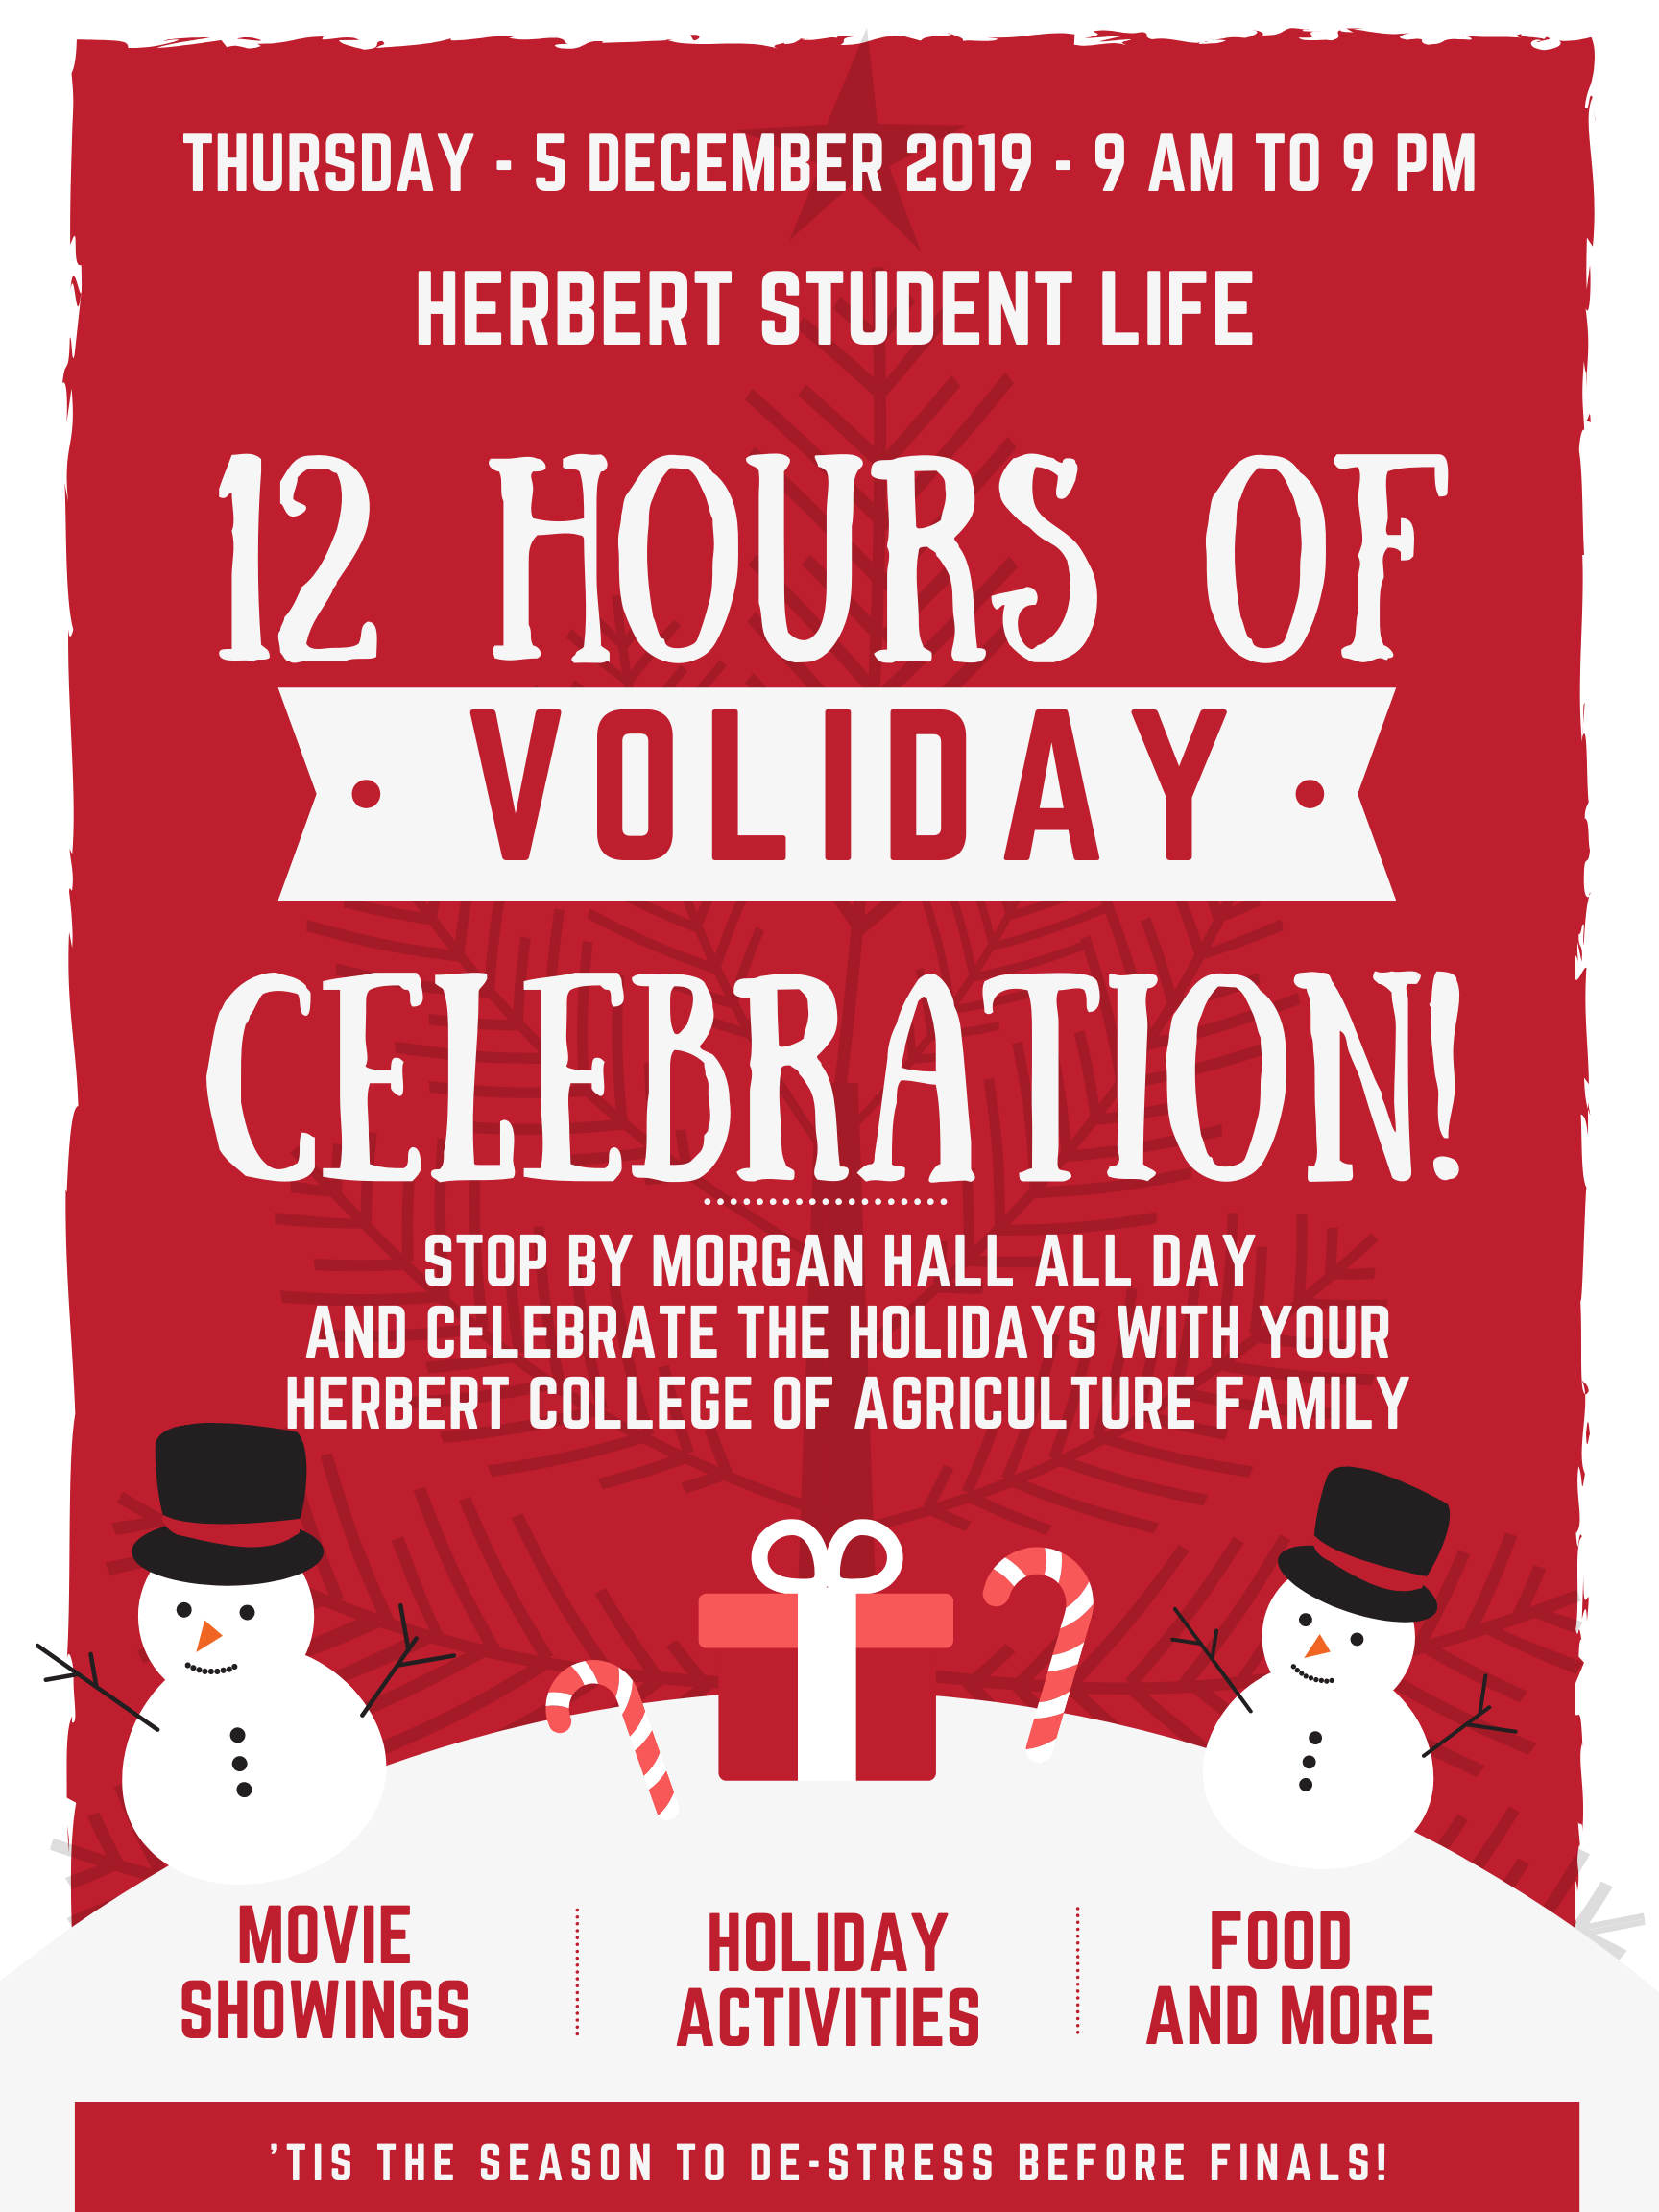 Stop by Morgan Hall All Day Thursday, Dec. 5th, 2019 and celebrate the holidays with your Herbert College of Agriculture family